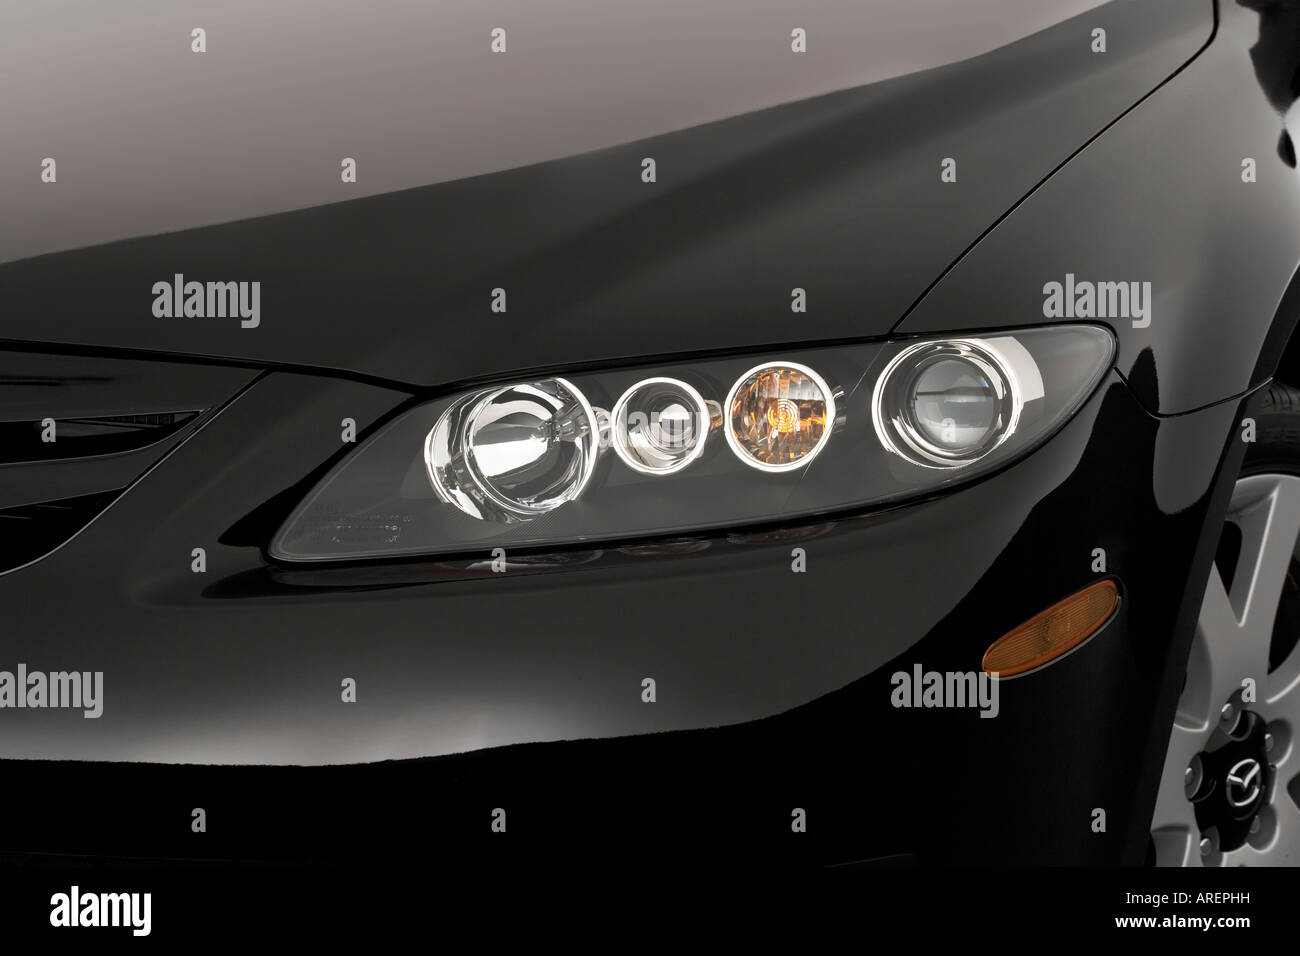 headlight led styling within lamp x headlights proportions bulb light bulbs car head for mazda ideas